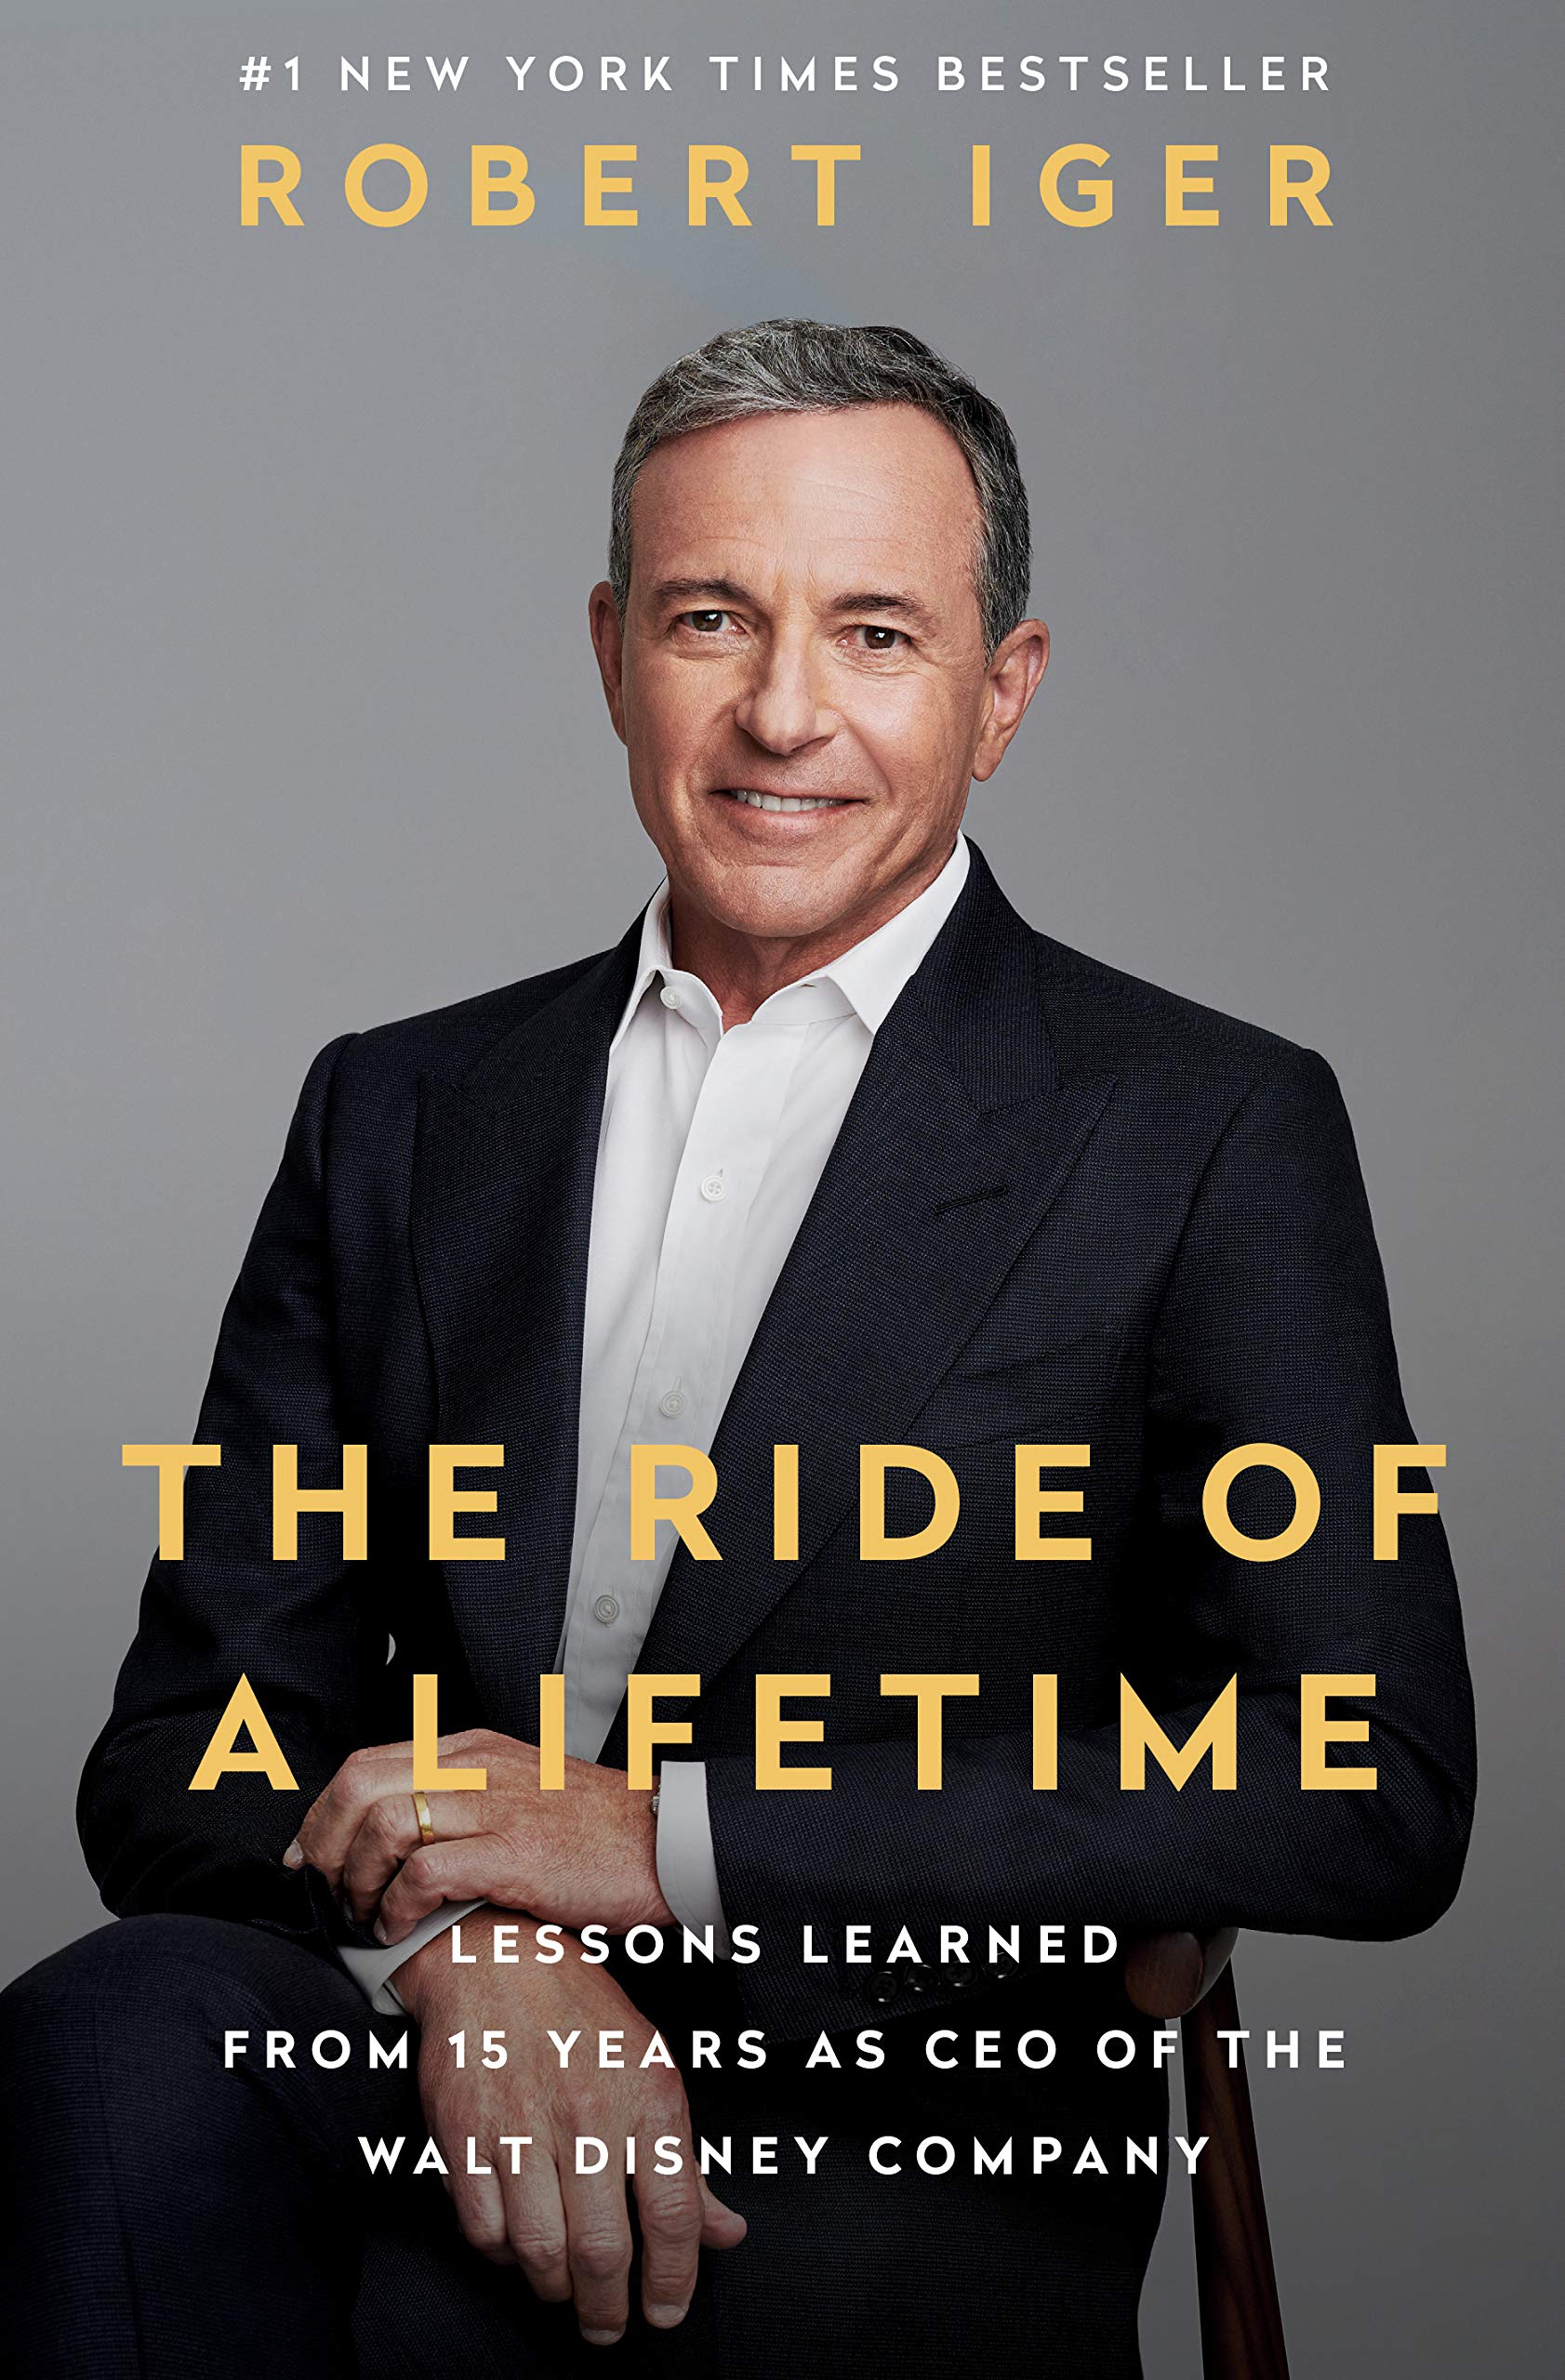 Best Business Books: The Ride of a Lifetime